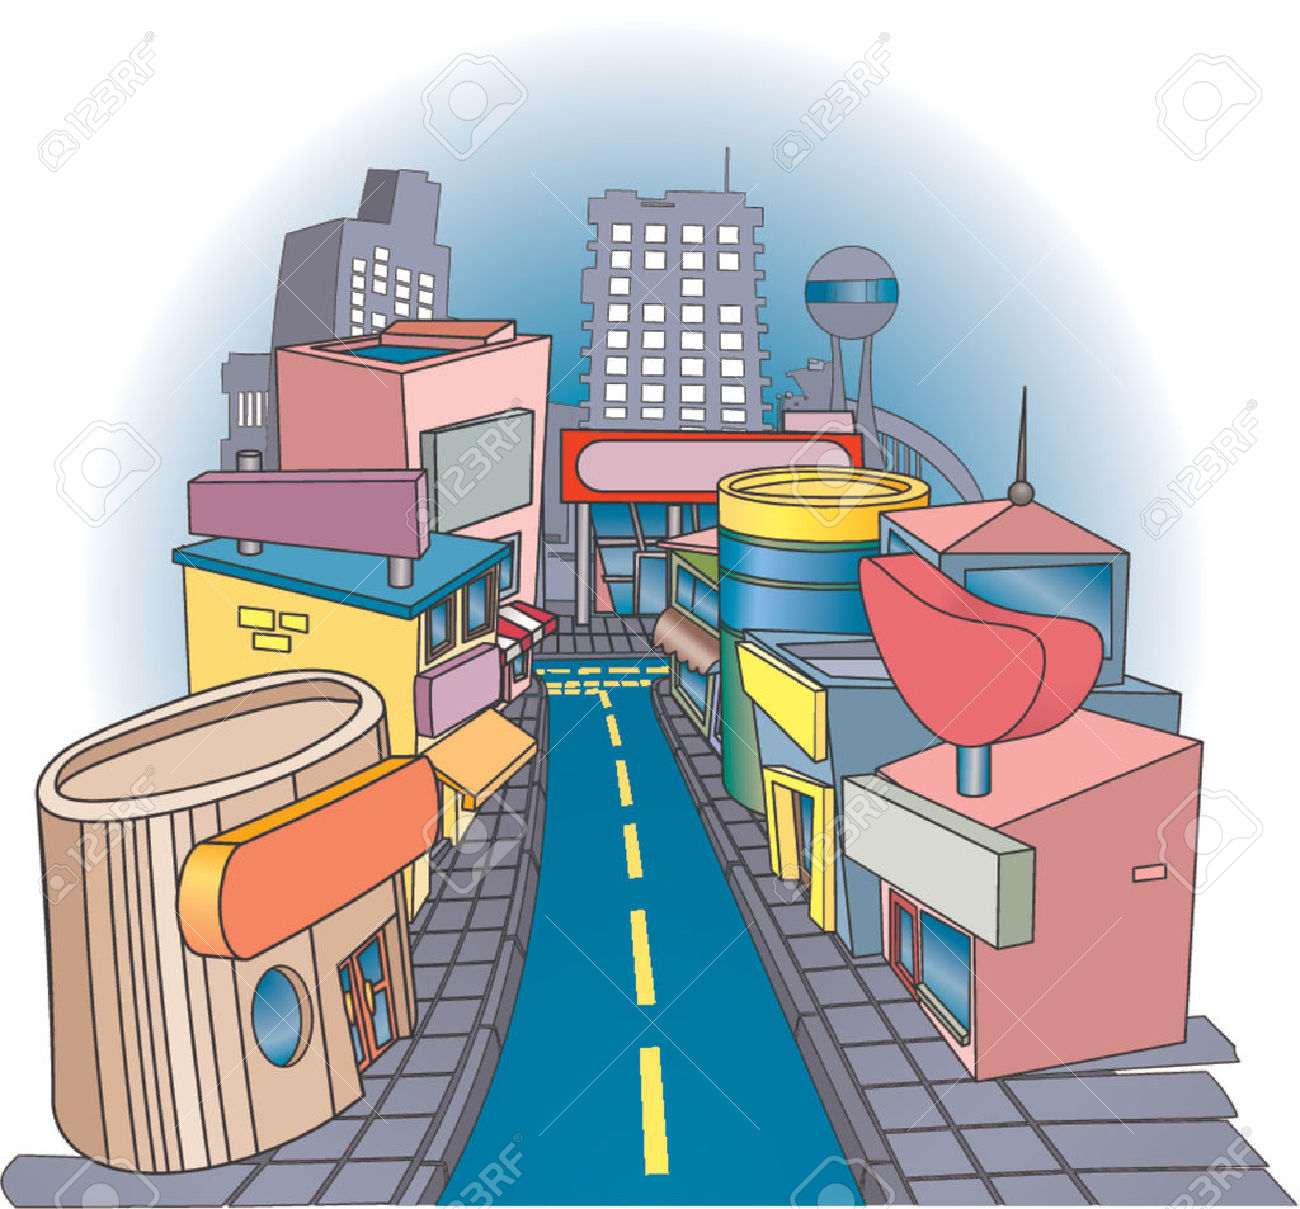 Row of shops clipart banner royalty free library Shopping Street. A Commercial Street With Some Very Funky Looking ... banner royalty free library